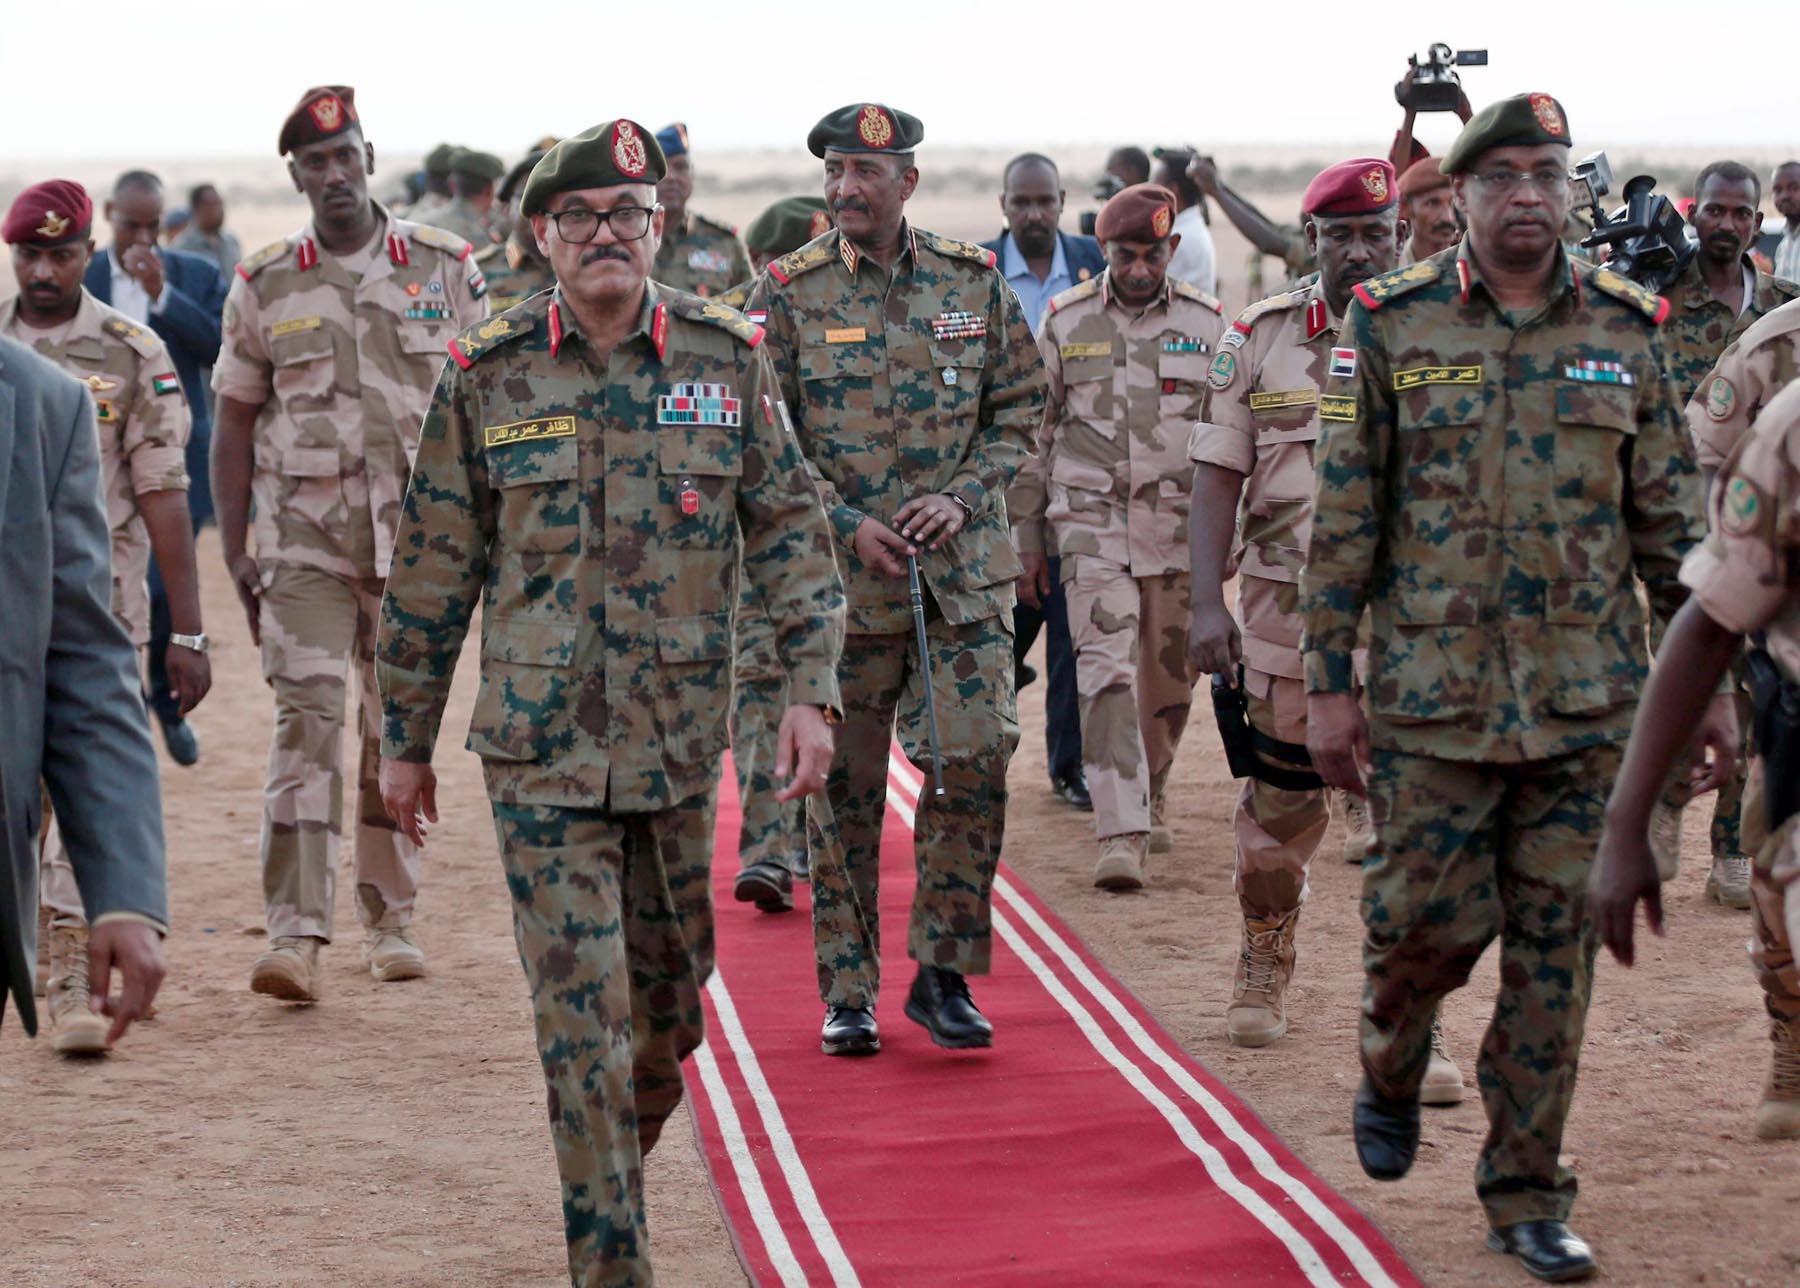 President of the Sudanese Transitional Council General Abdel Fattah al-Burhan (C) walks alongside military officers during an army exercise on the outskirts of the capital Khartoum, last October (AFP)